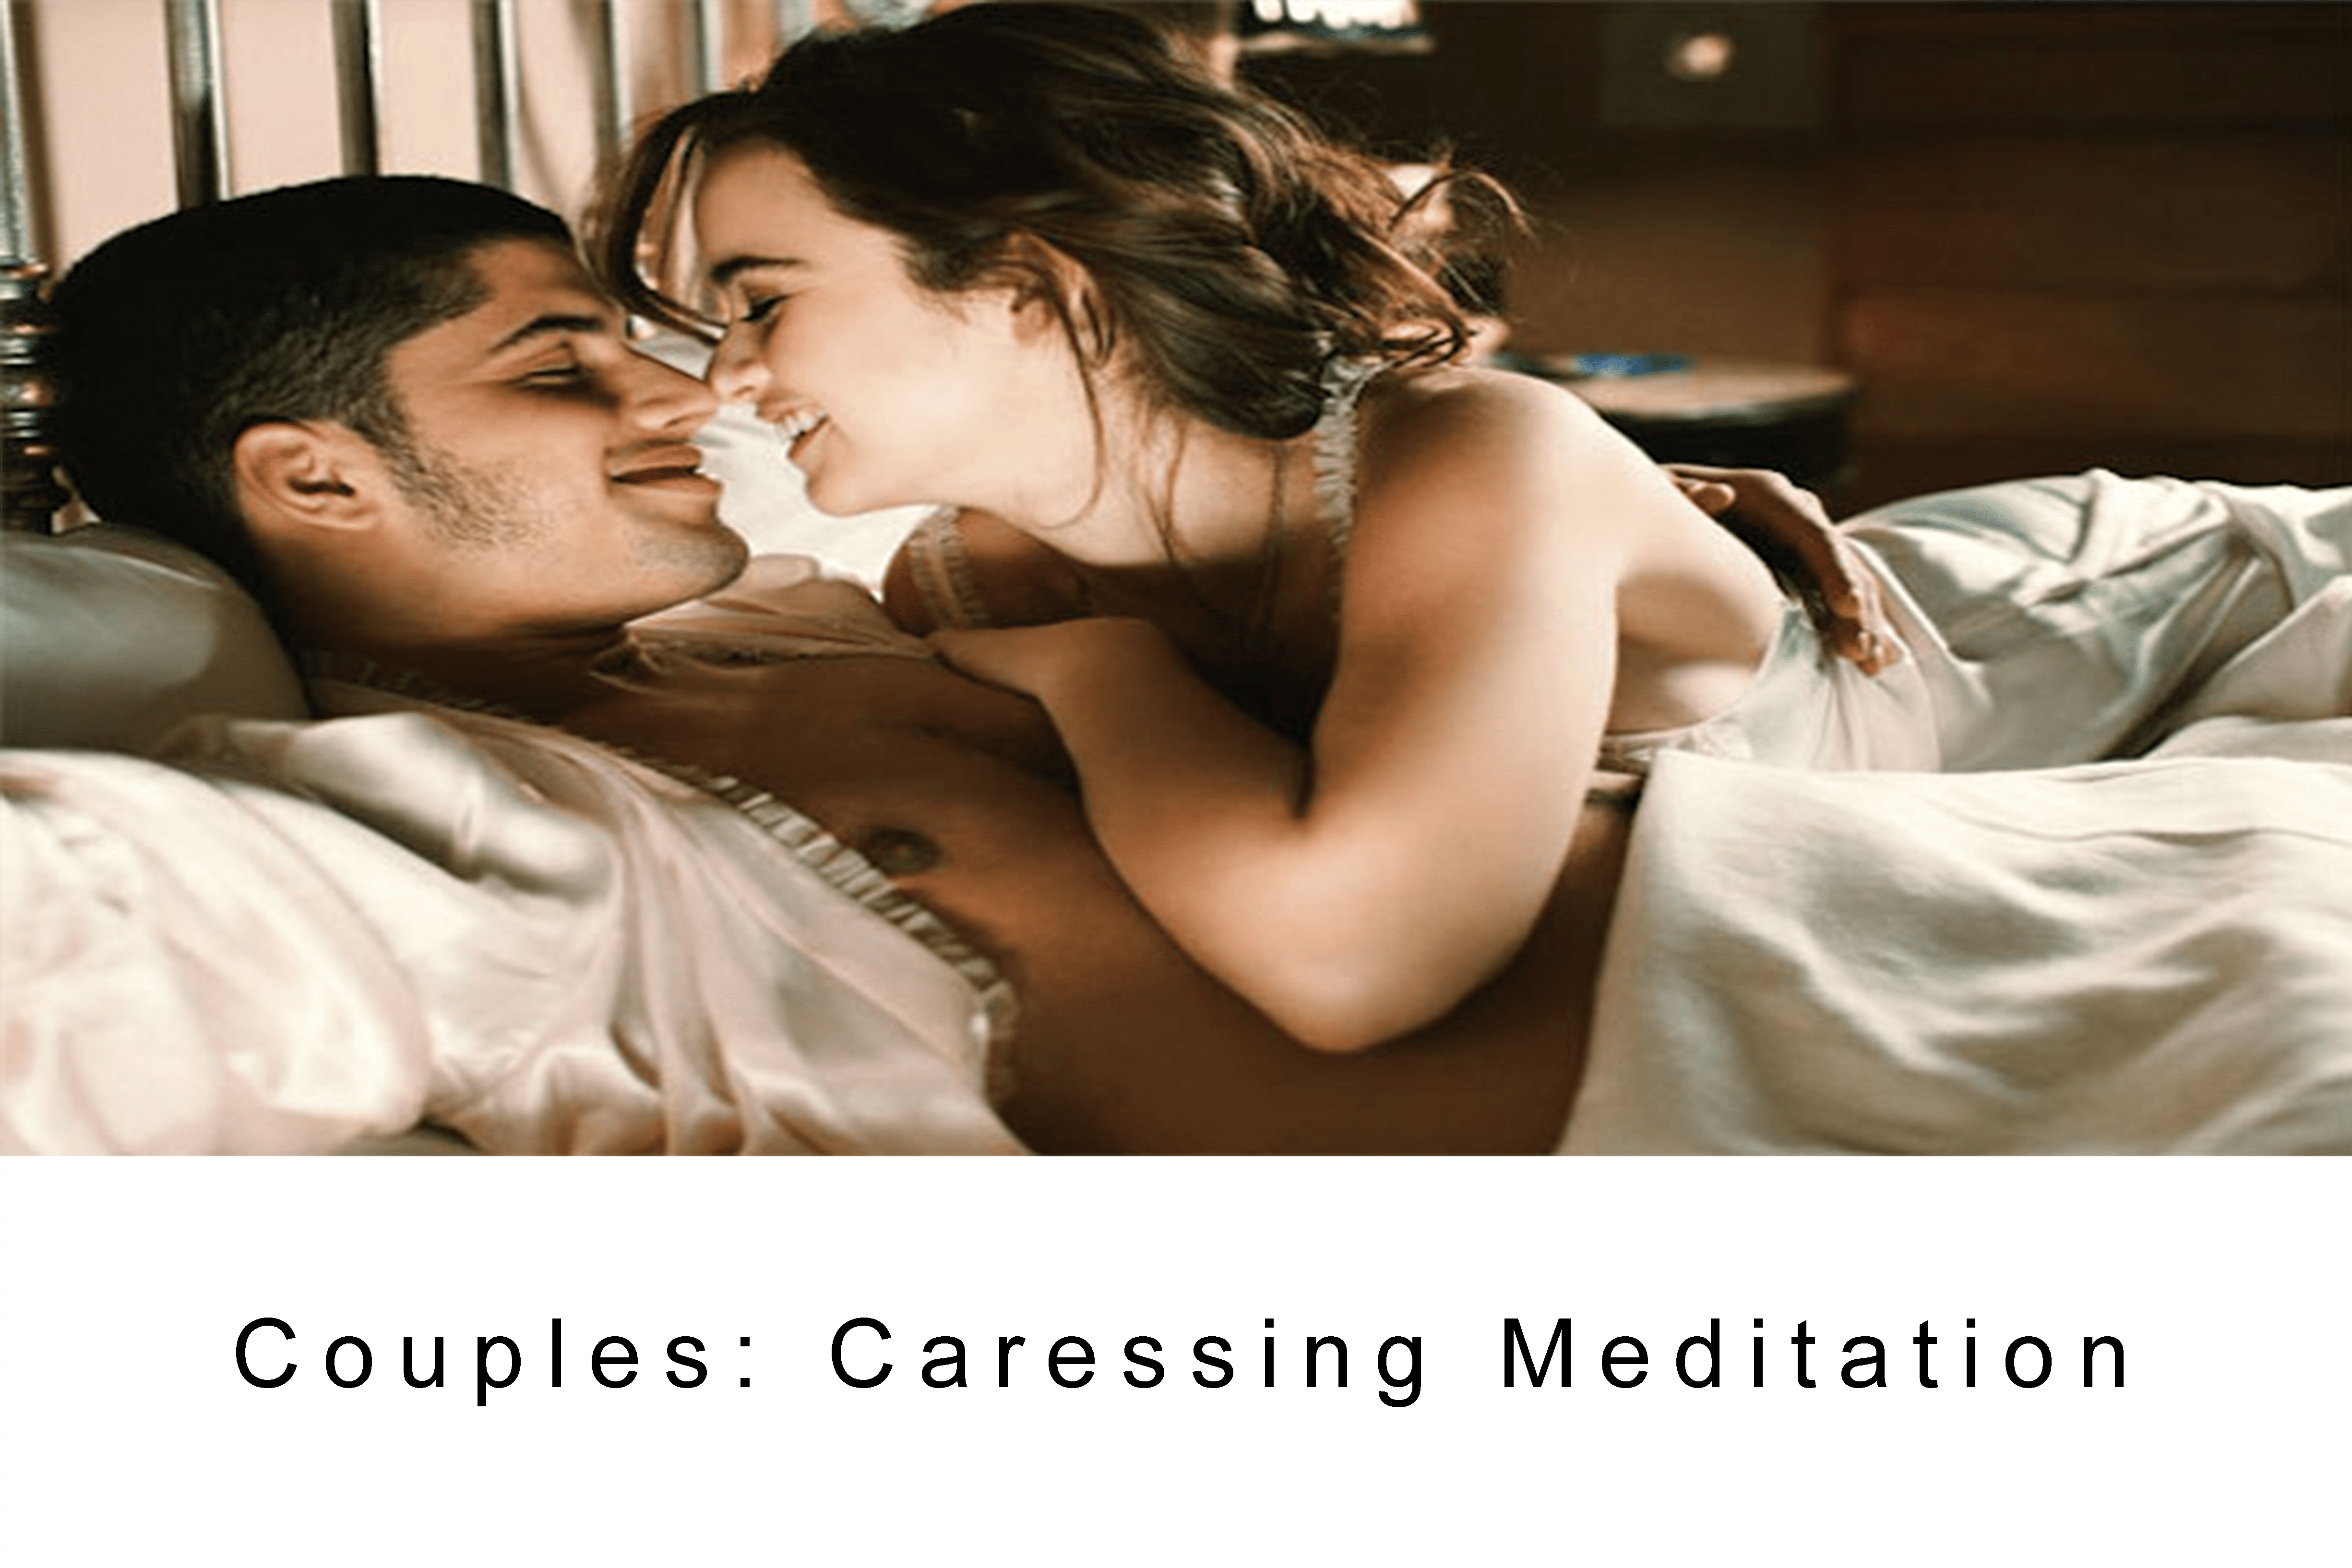 Caressing Meditation